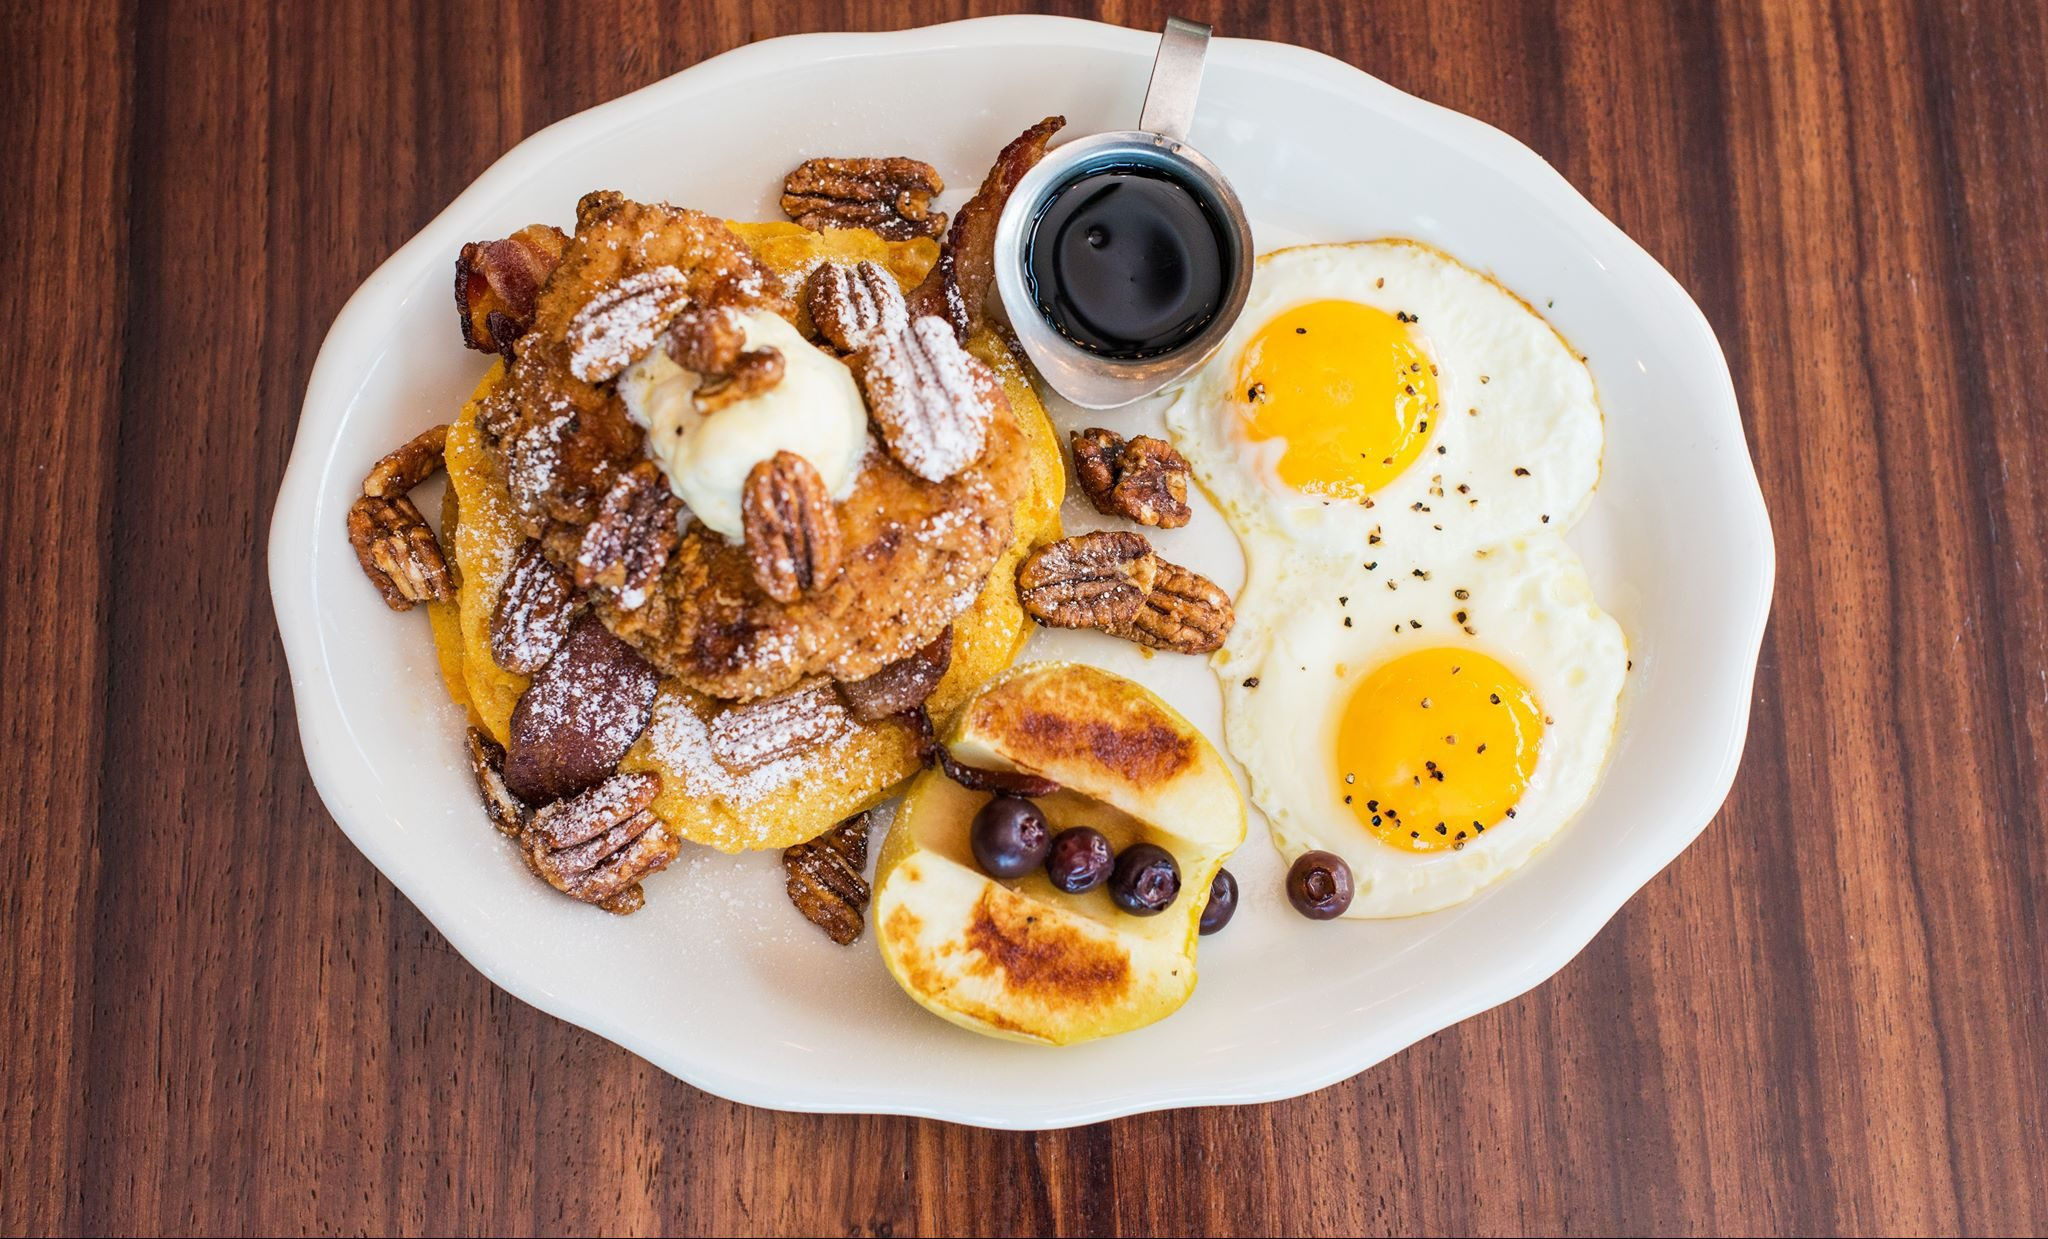 Super Best Places To Brunch In Frisco Local Profile Of Collin County Download Free Architecture Designs Intelgarnamadebymaigaardcom